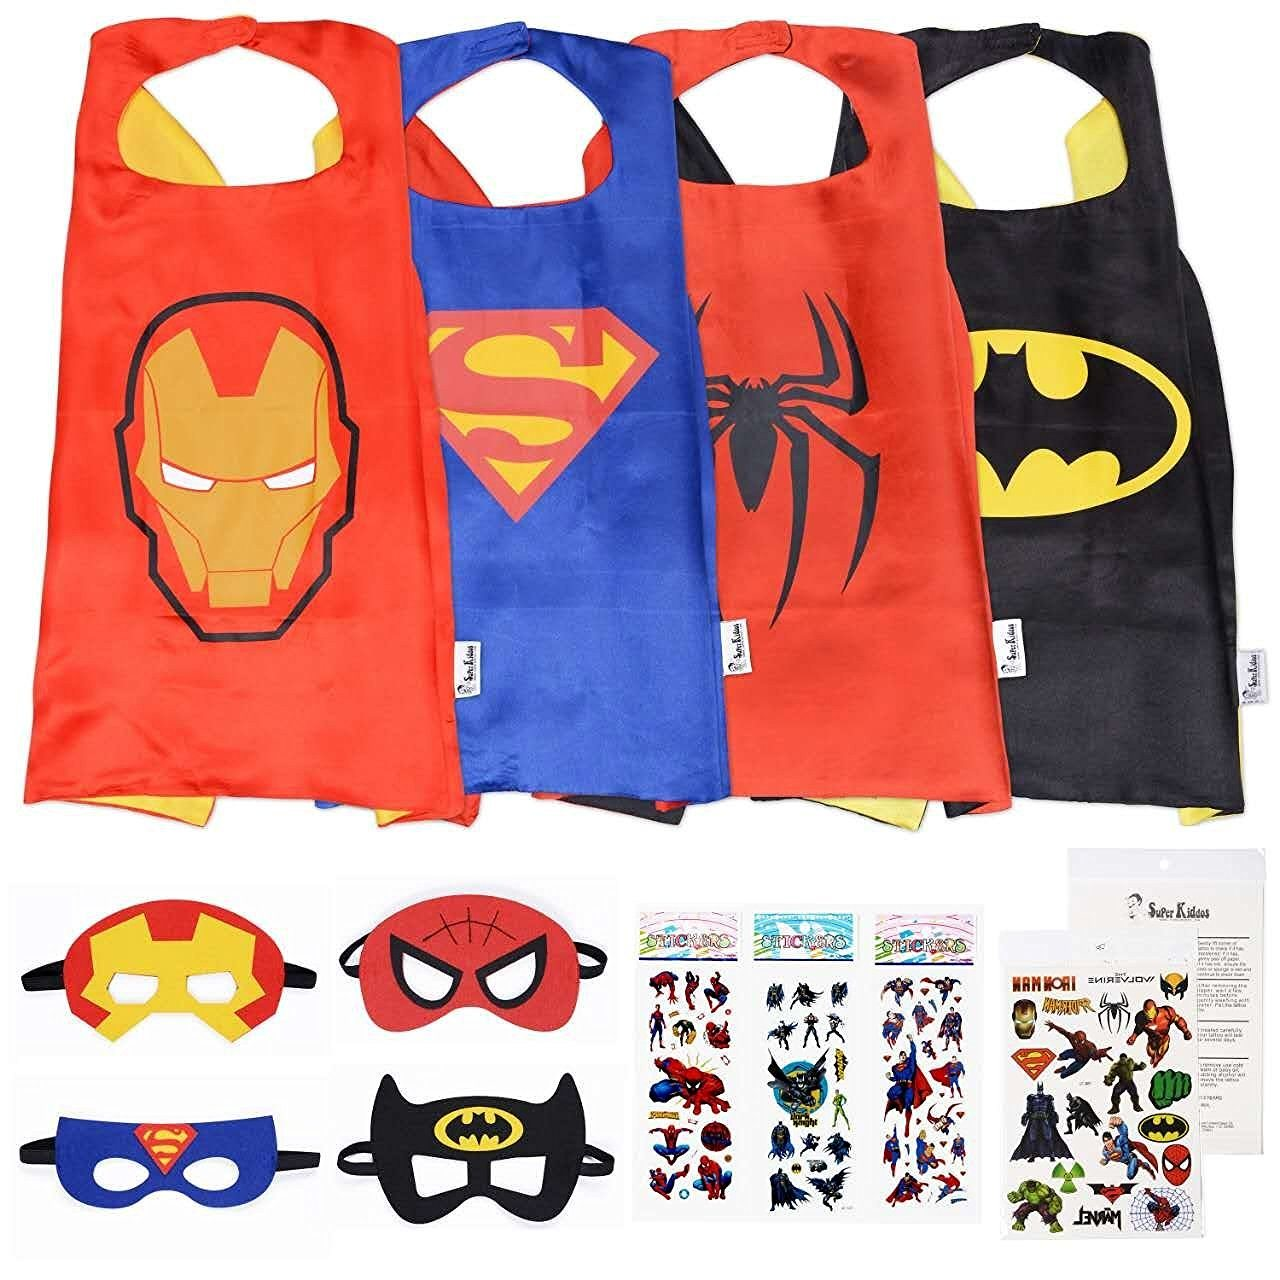 71djLn8ubkL. SL1280  - Superhero Cape and Mask Costumes For Kids SET - 4 Capes, 4 Masks, Stickers and Tattoos